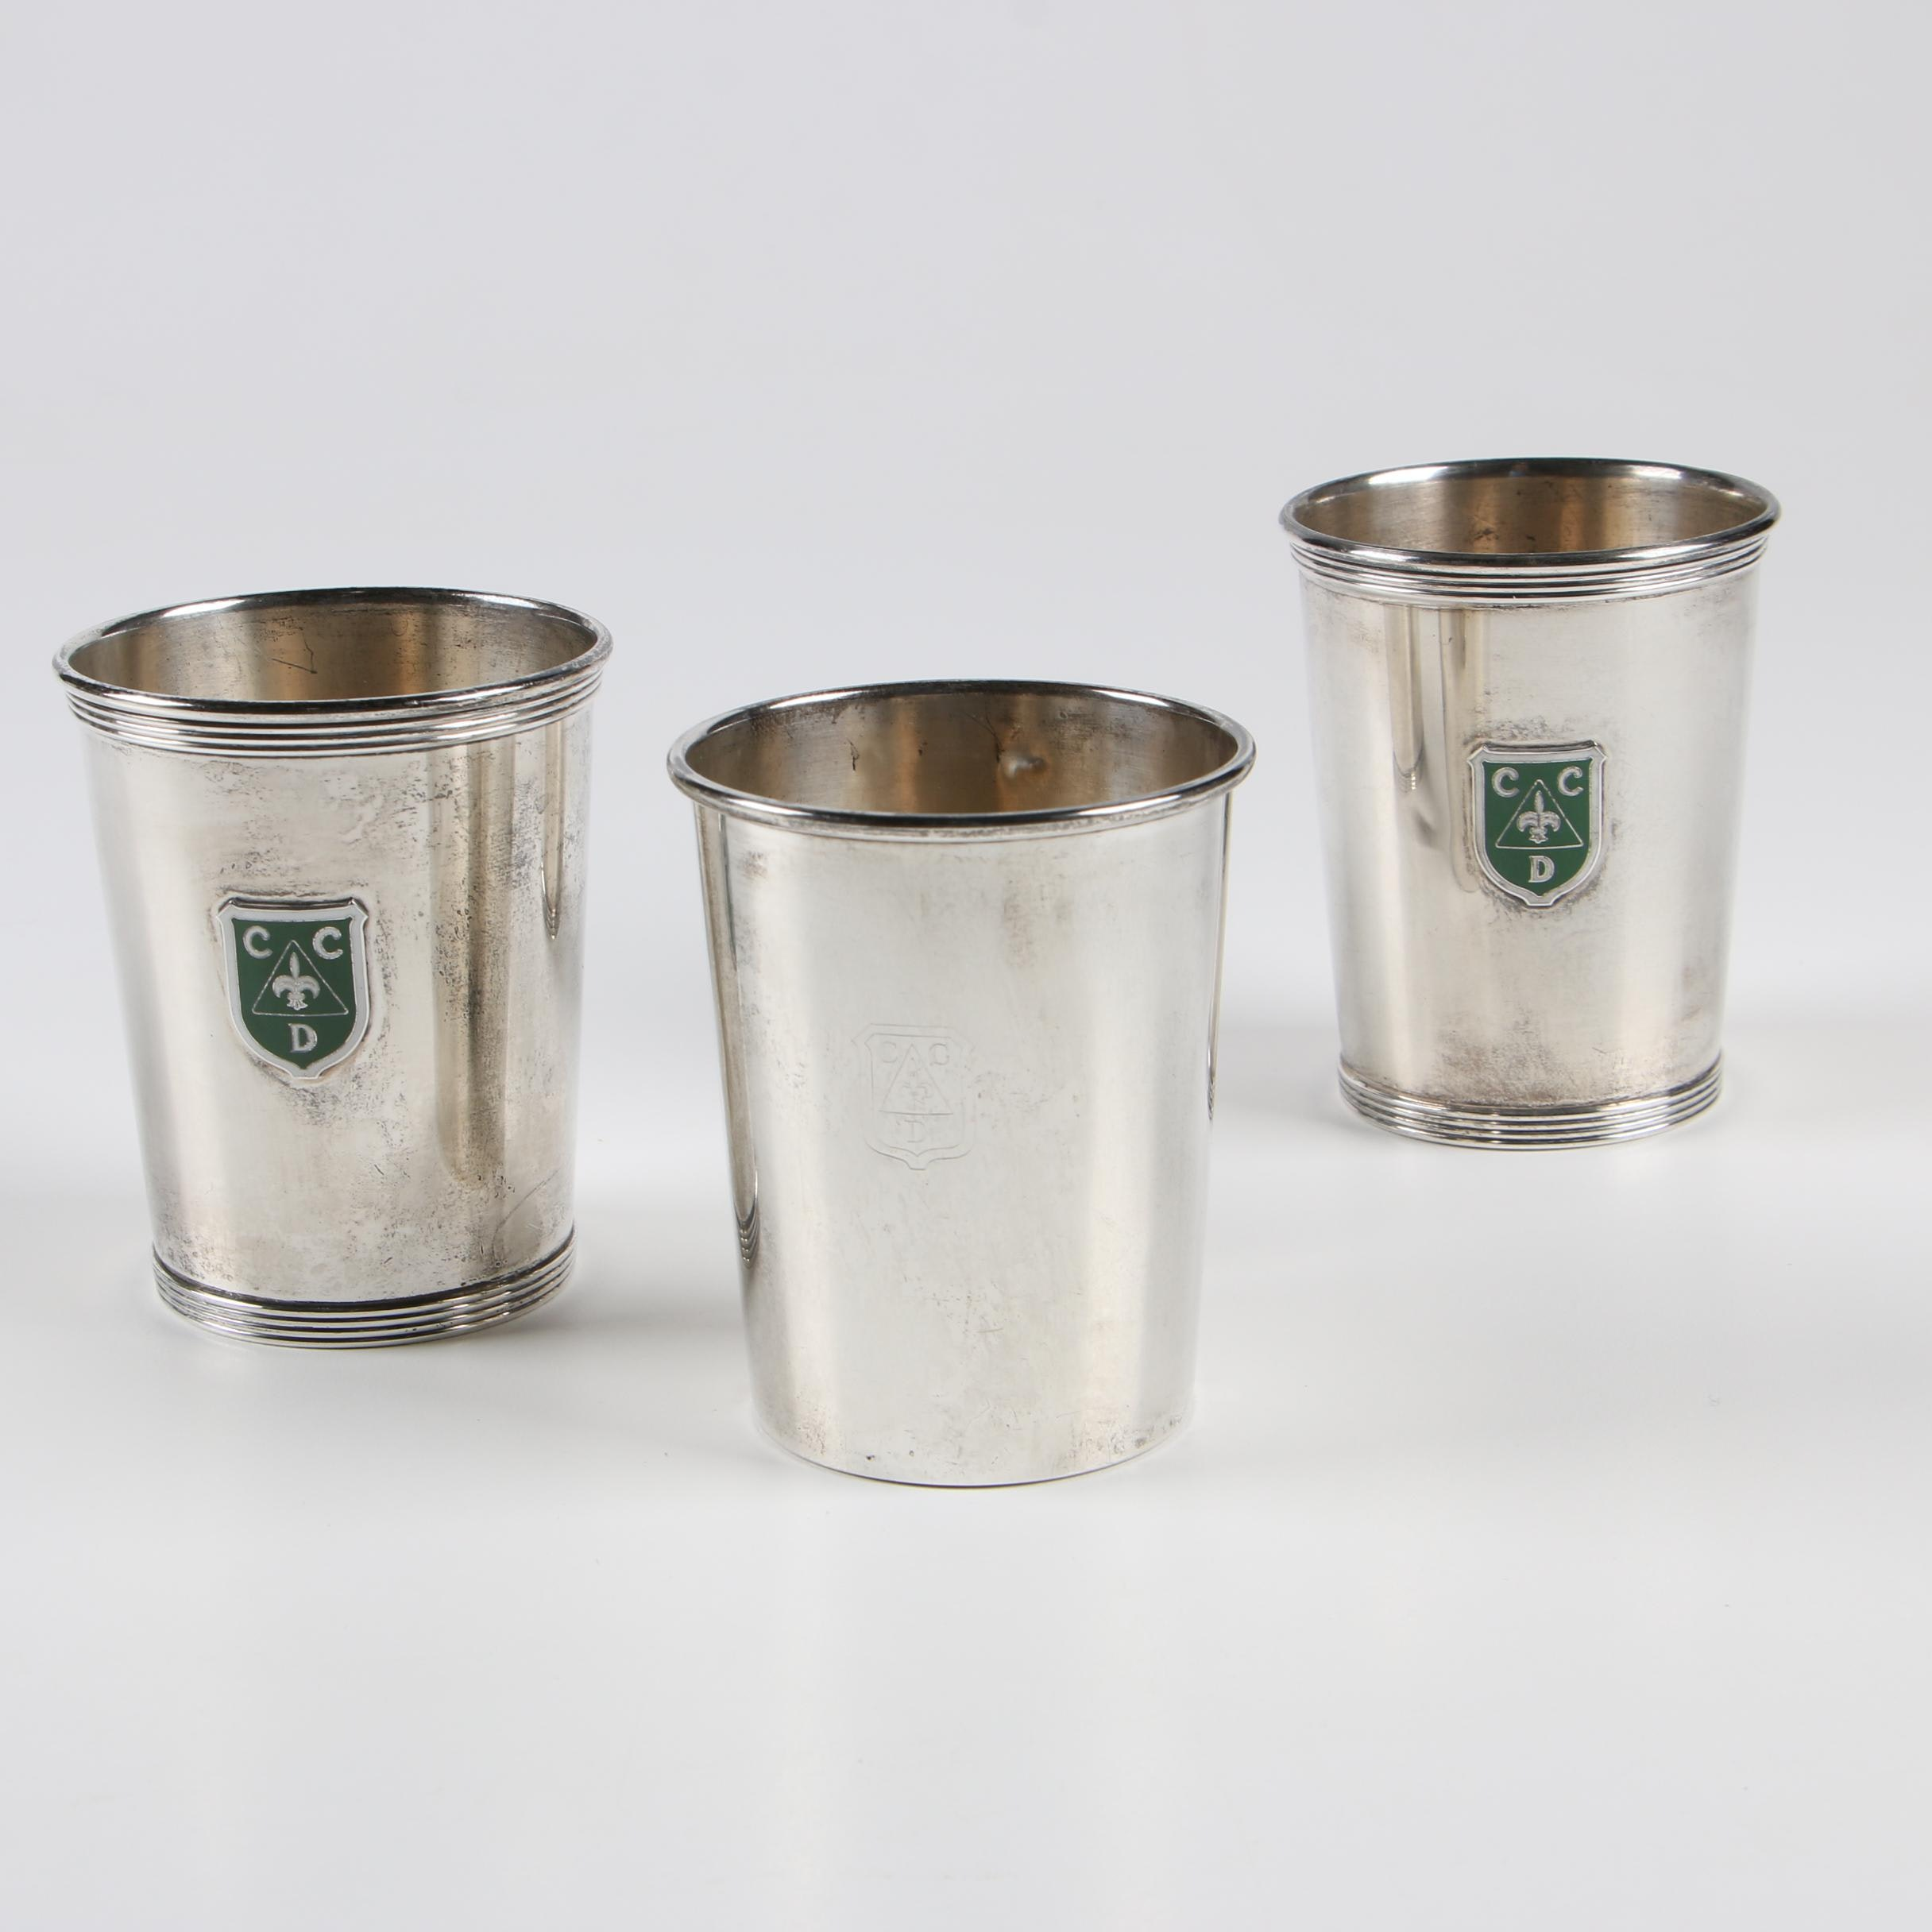 Alvin Sterling Silver Cincinnati Country Day Mint Julep Cups, Early 20th Century